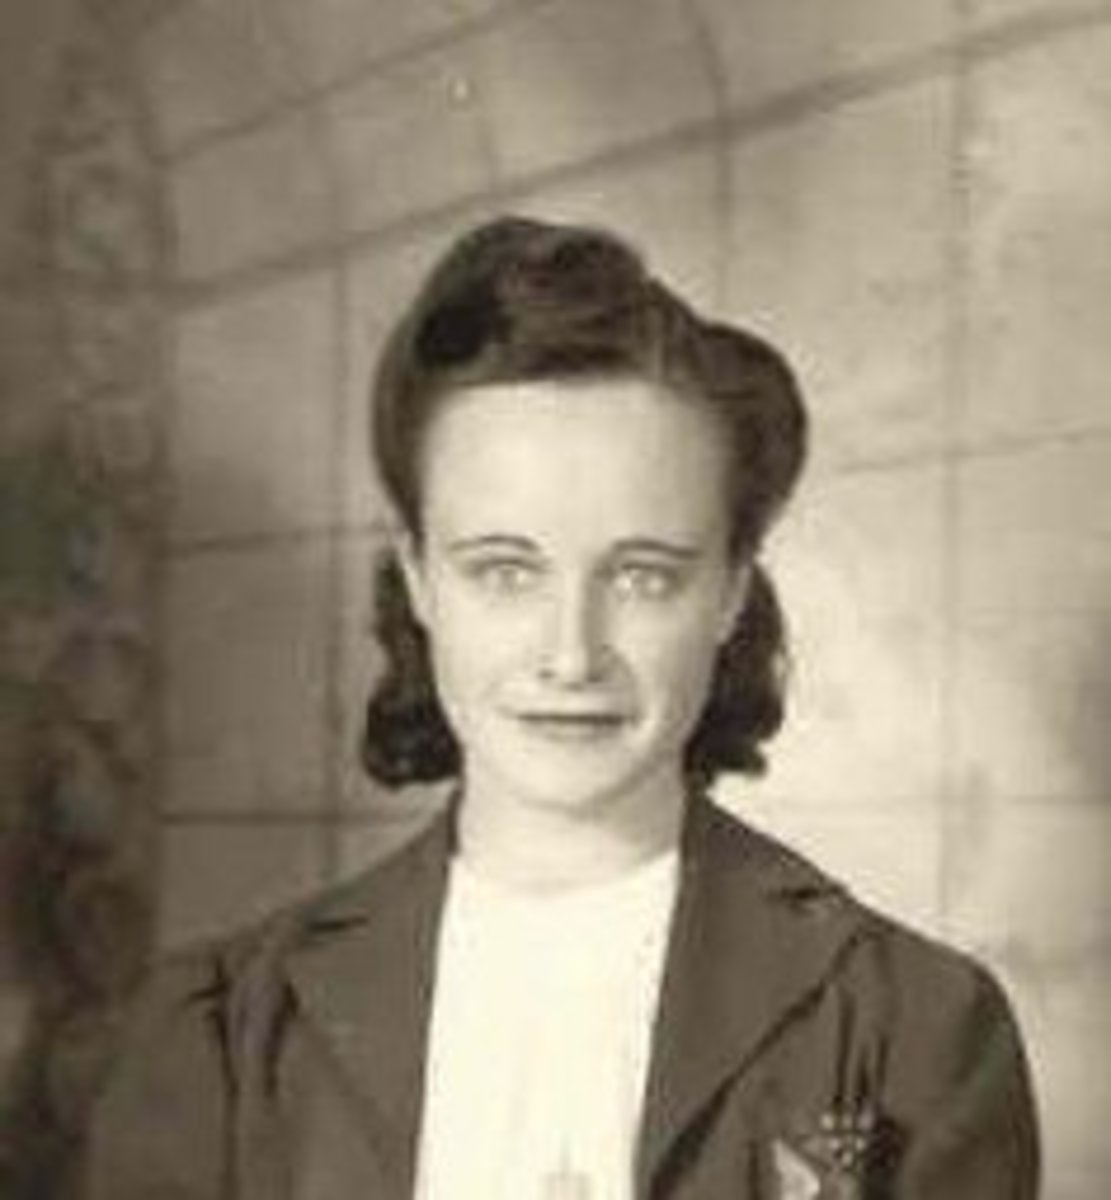 Mother as a young woman during World War II.